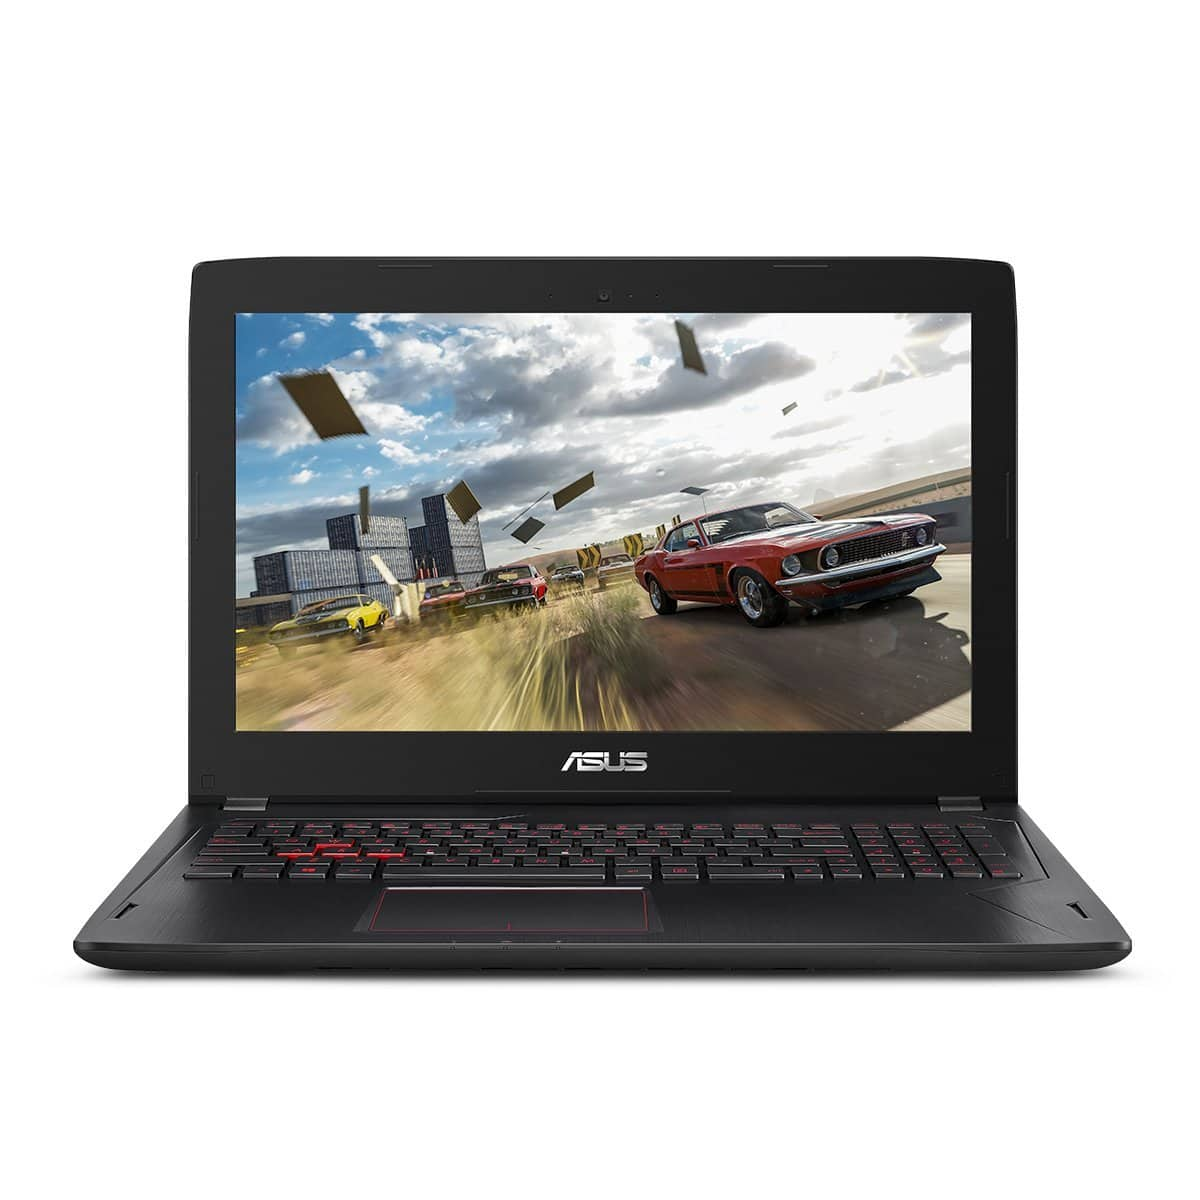 asus 15 6 fx502vm gaming laptop i5 6300hq gtx 1060 win 10. Black Bedroom Furniture Sets. Home Design Ideas